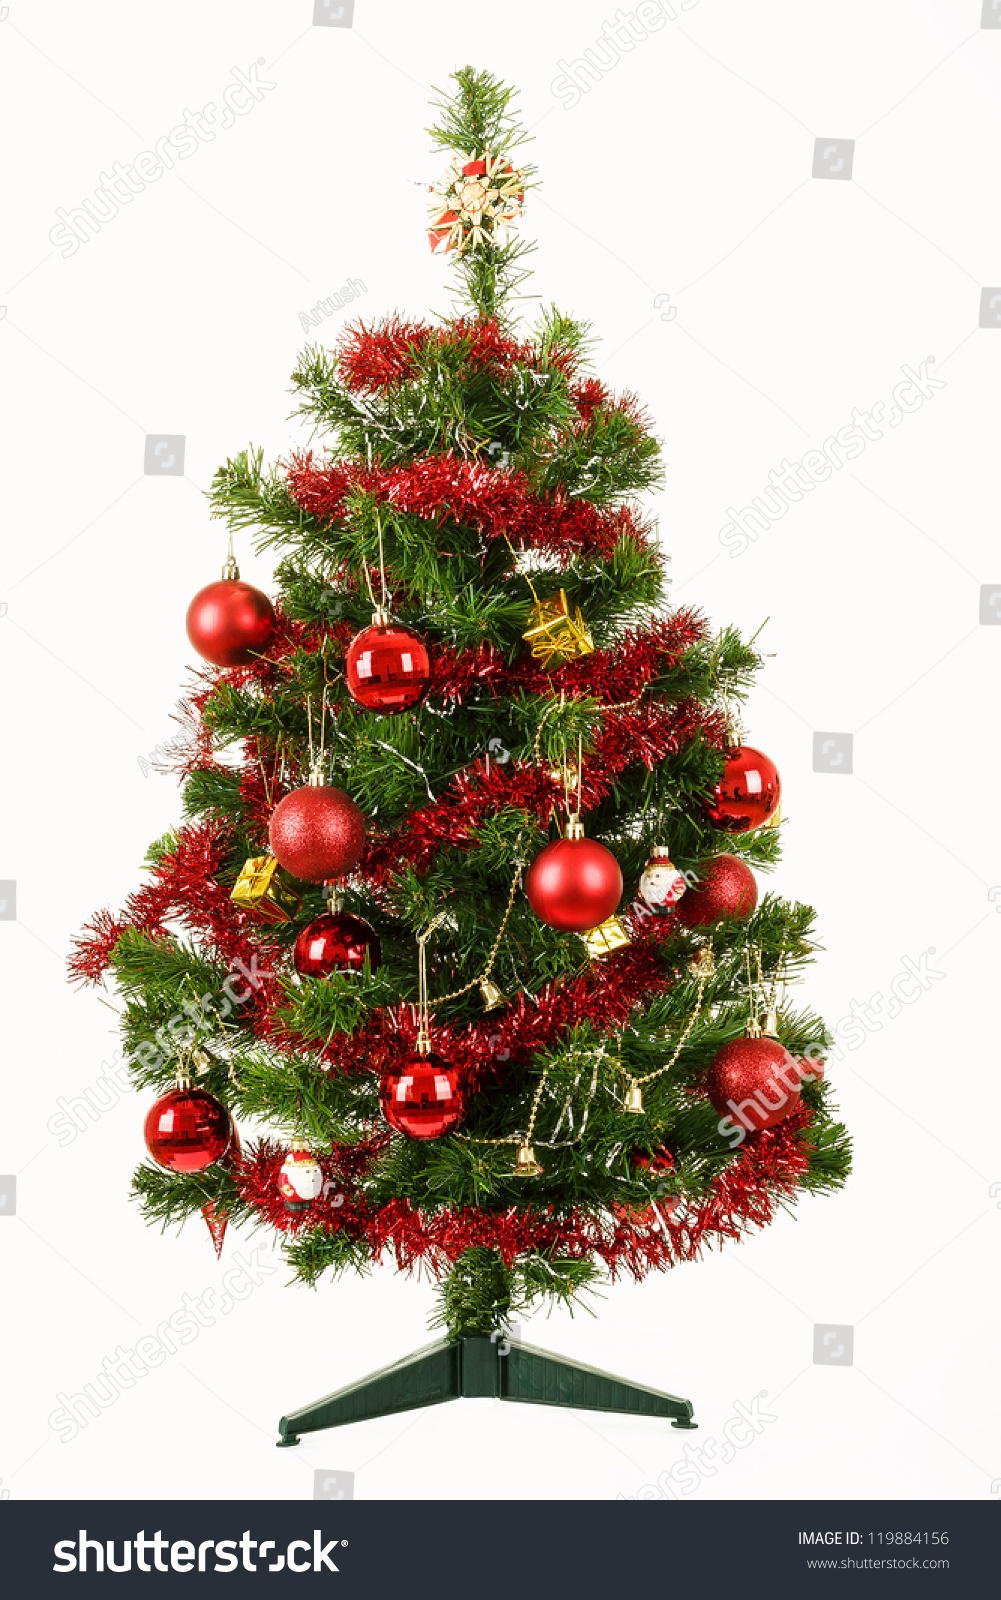 Decorated christmas tree with red balls on white